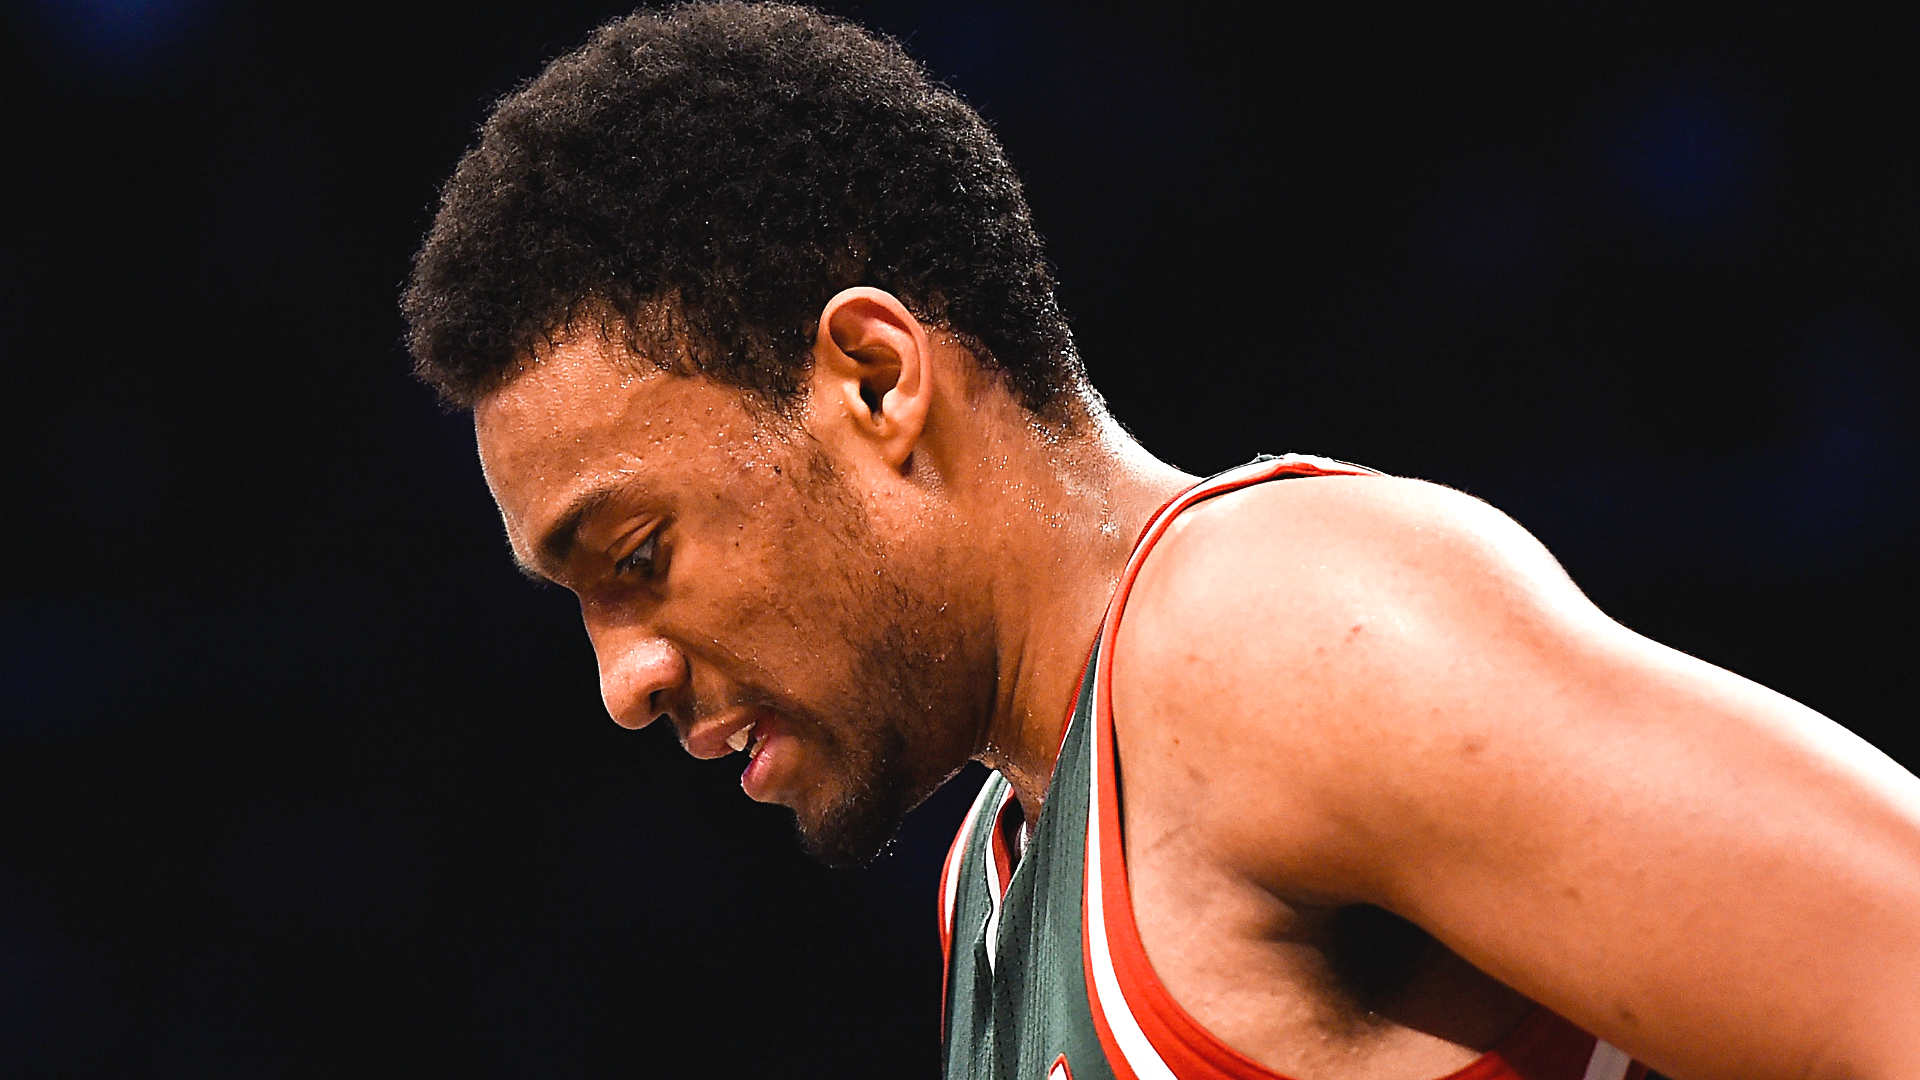 Bucks punish Jabari Parker for violating team rule